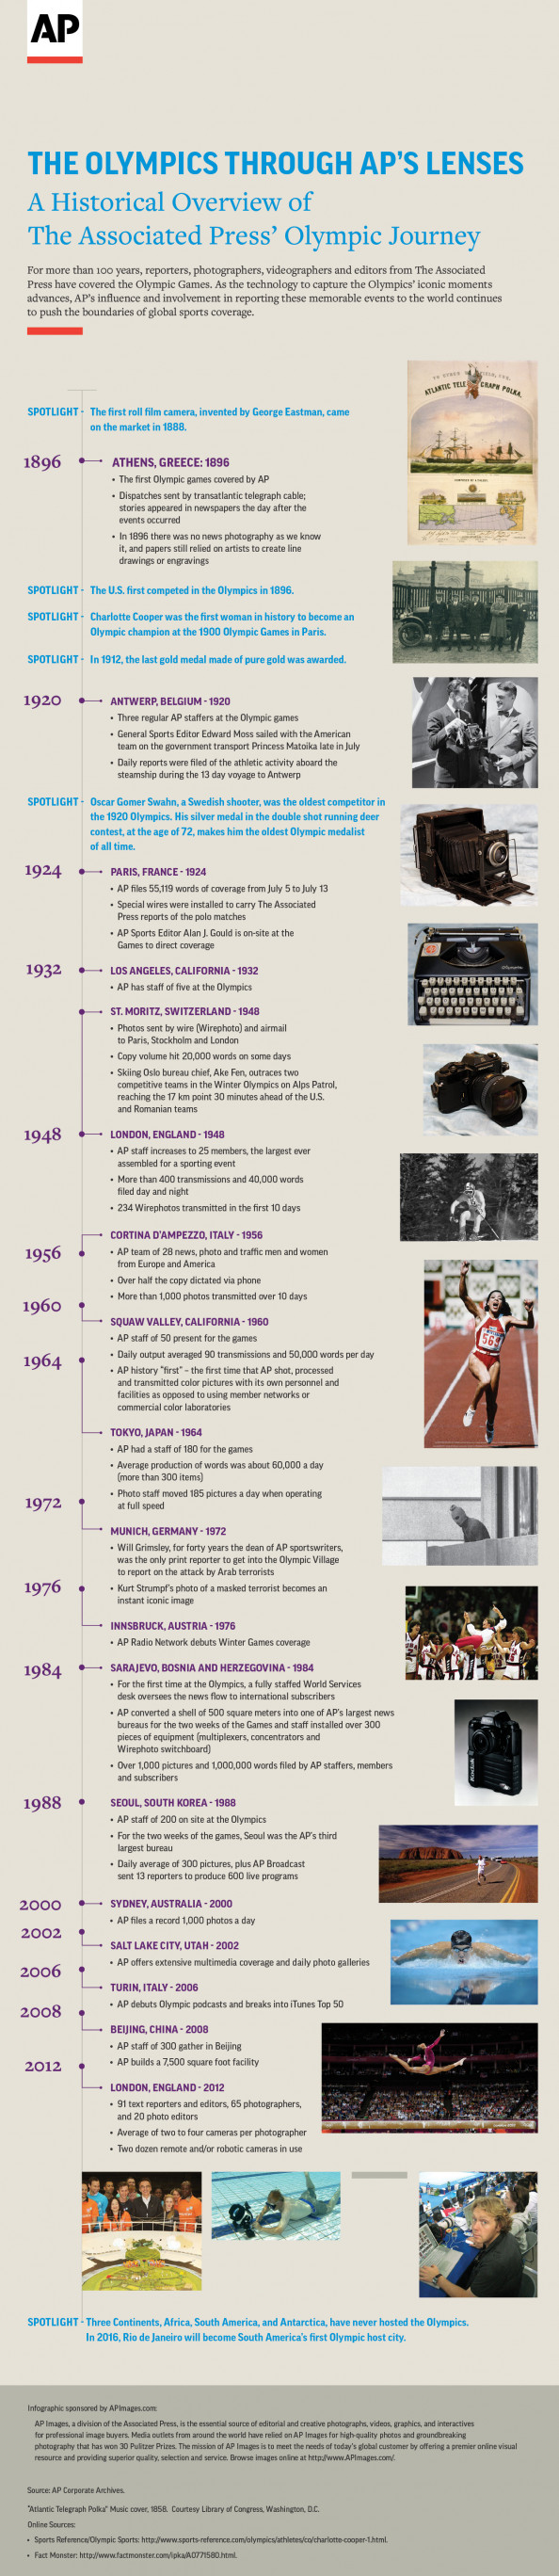 The Olympics Through AP's Lenses Infographic